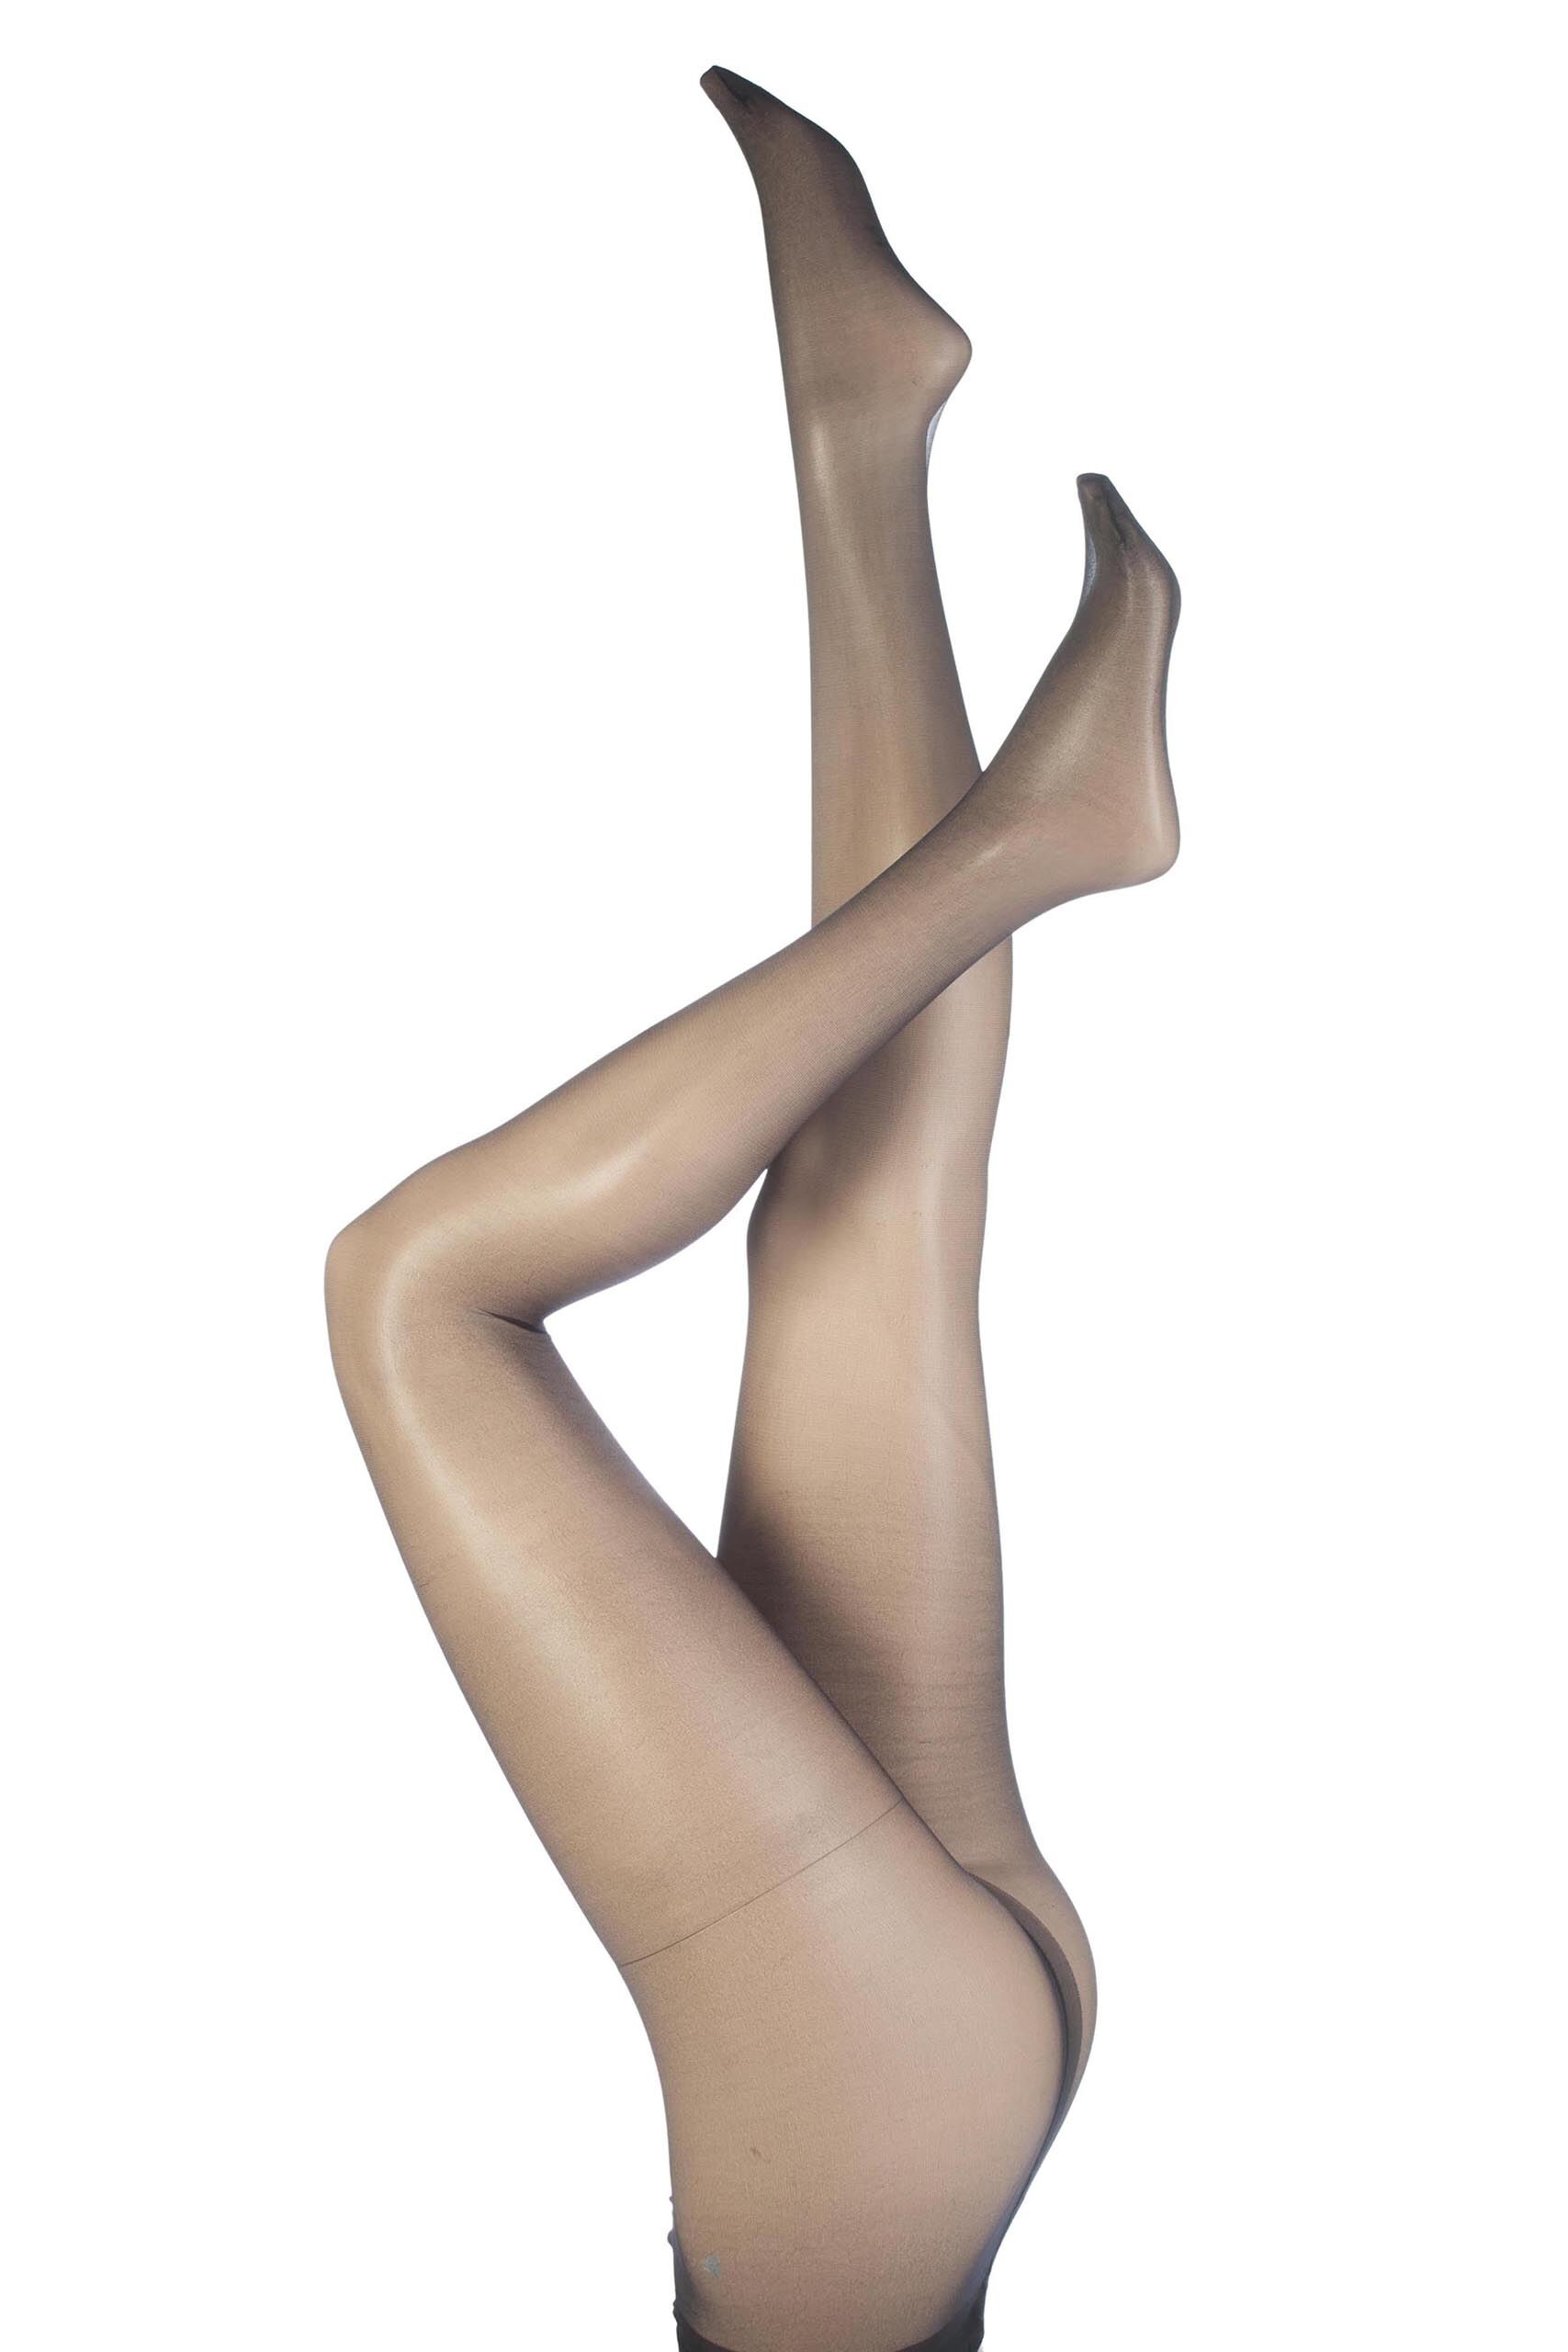 Image of 1 Pair Black 10 Denier Ultra Shine Tights with Silk Finish Ladies Large - Aristoc